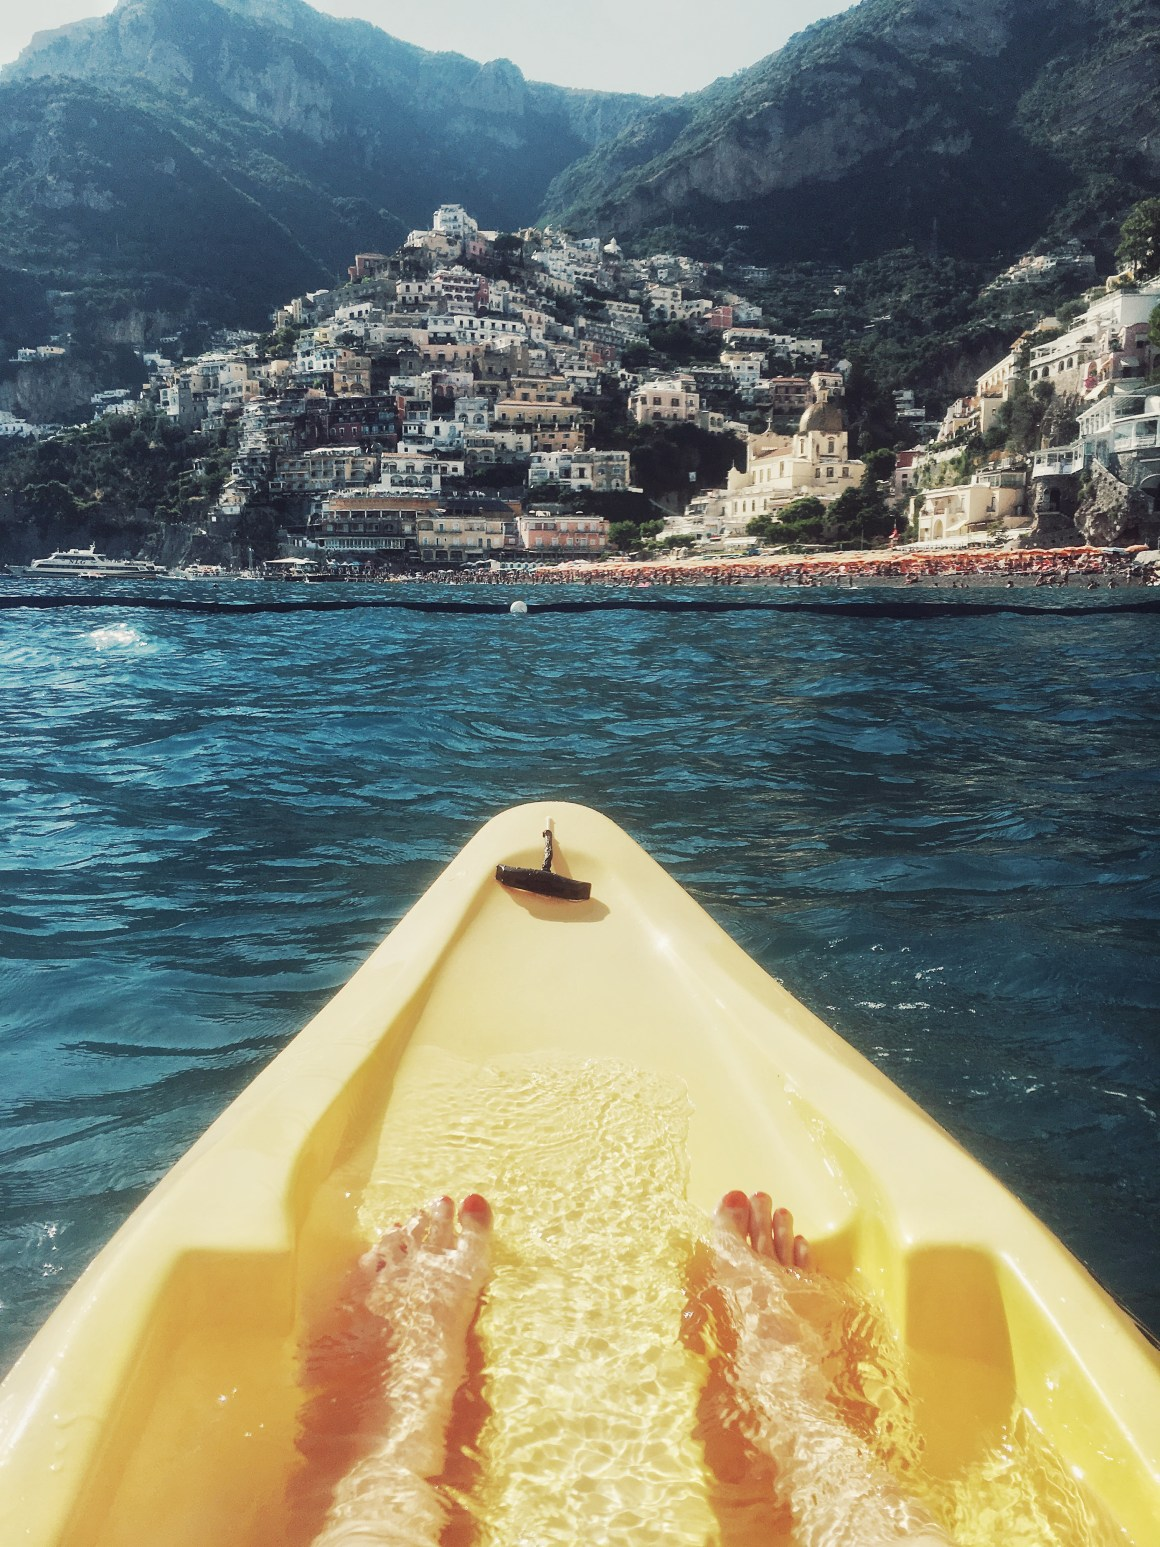 Positano Costiera Amalfitana Travel Trip Summer Once Upon a Time